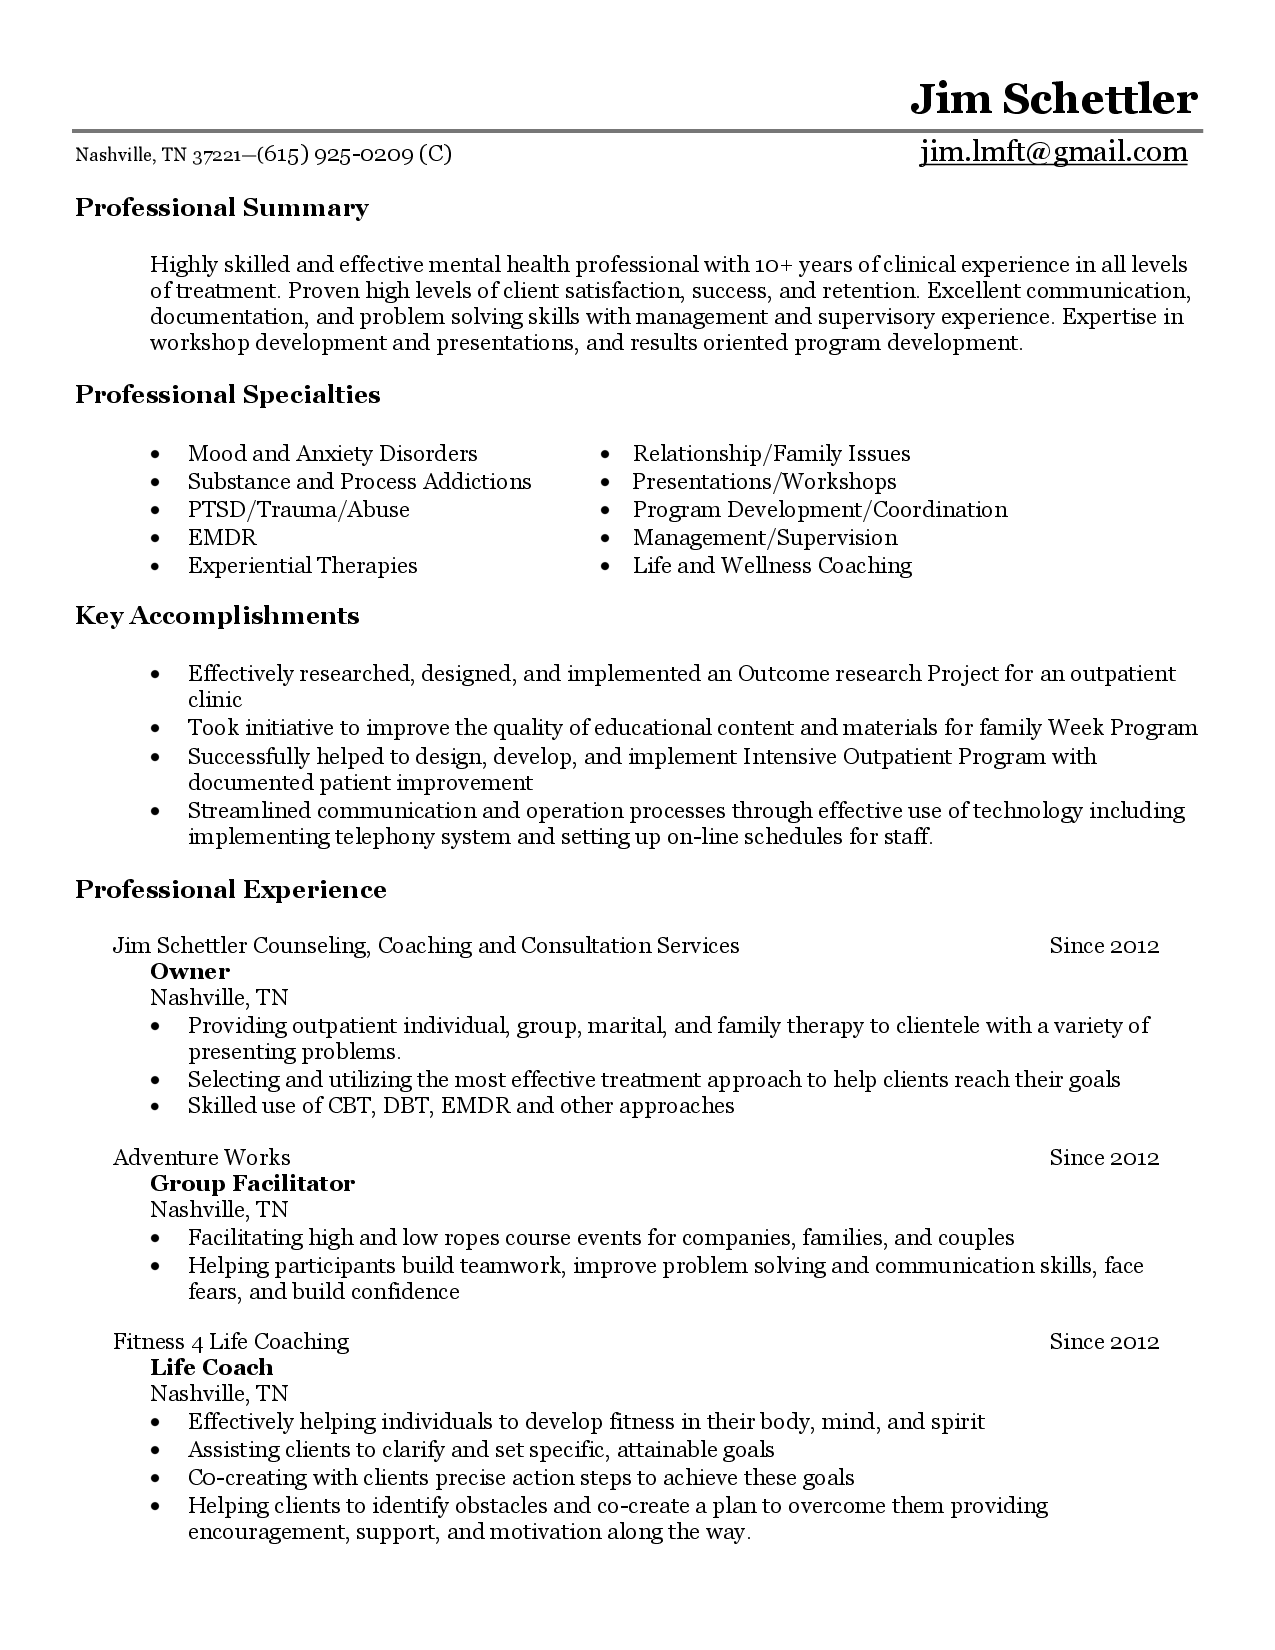 Wellness Coach Cover Letter - All New Resume Examples ...